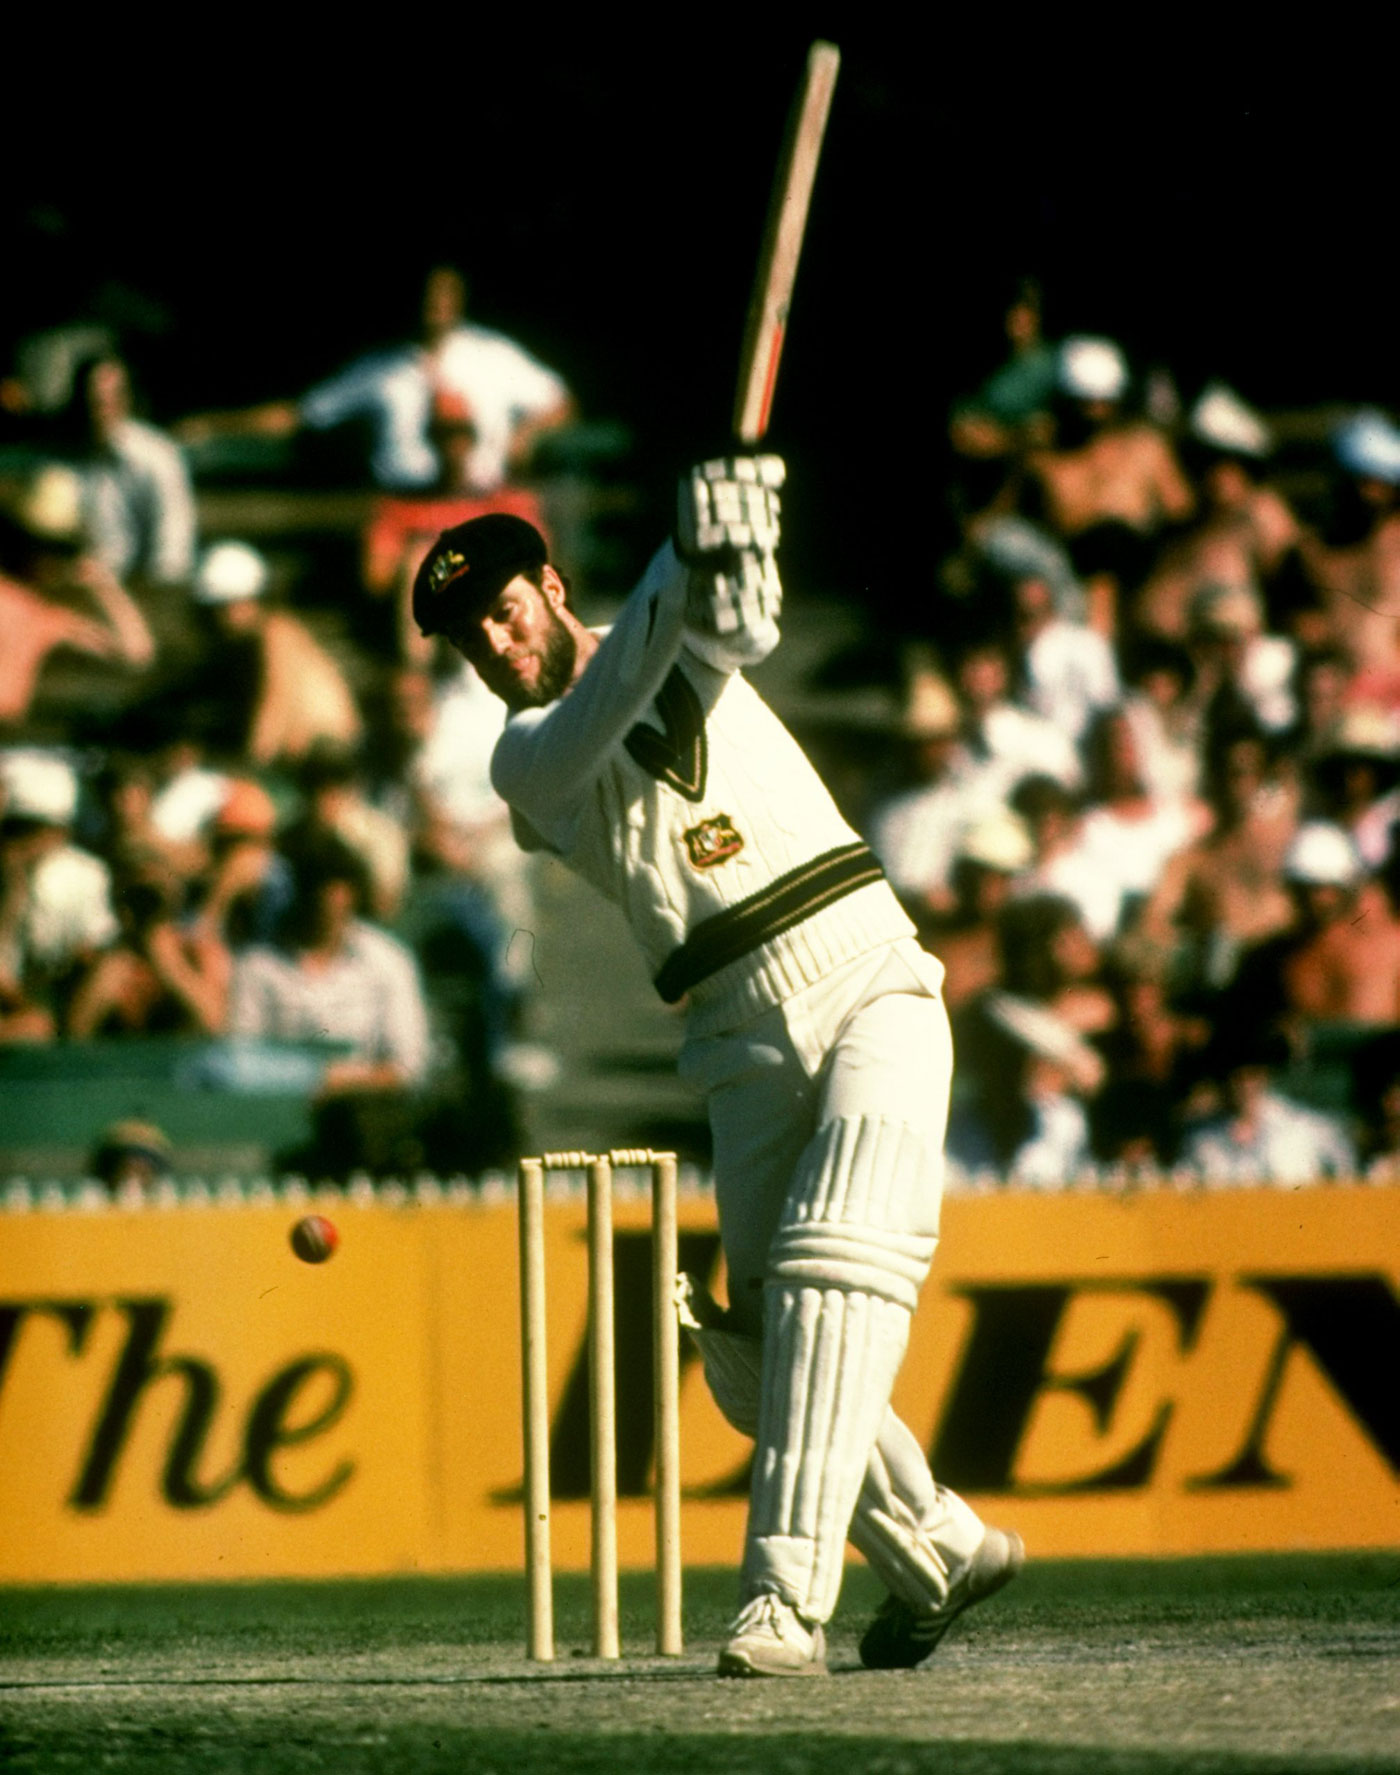 Greg Chappell turned his weaker (top) hand into his dominant one because a firm top-hand grip coupled with a loose bottom-hand grip is